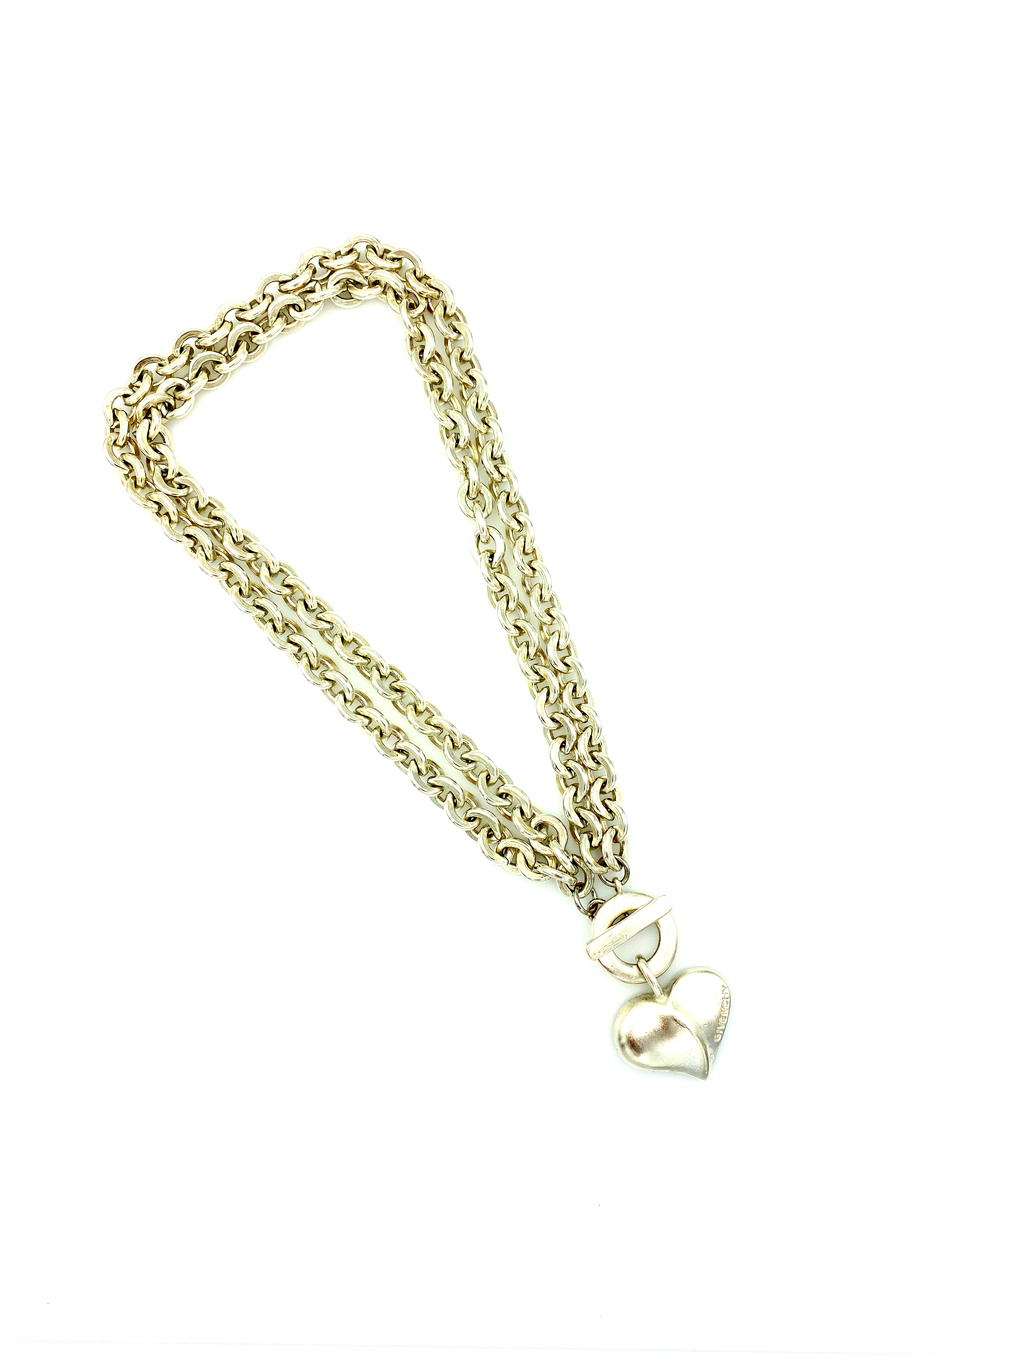 Givenchy Matt Silver Double Chain Heart Vintage Pendant-Sustainable Fashion with Vintage Style-Trending Designer Fashion-24 Wishes